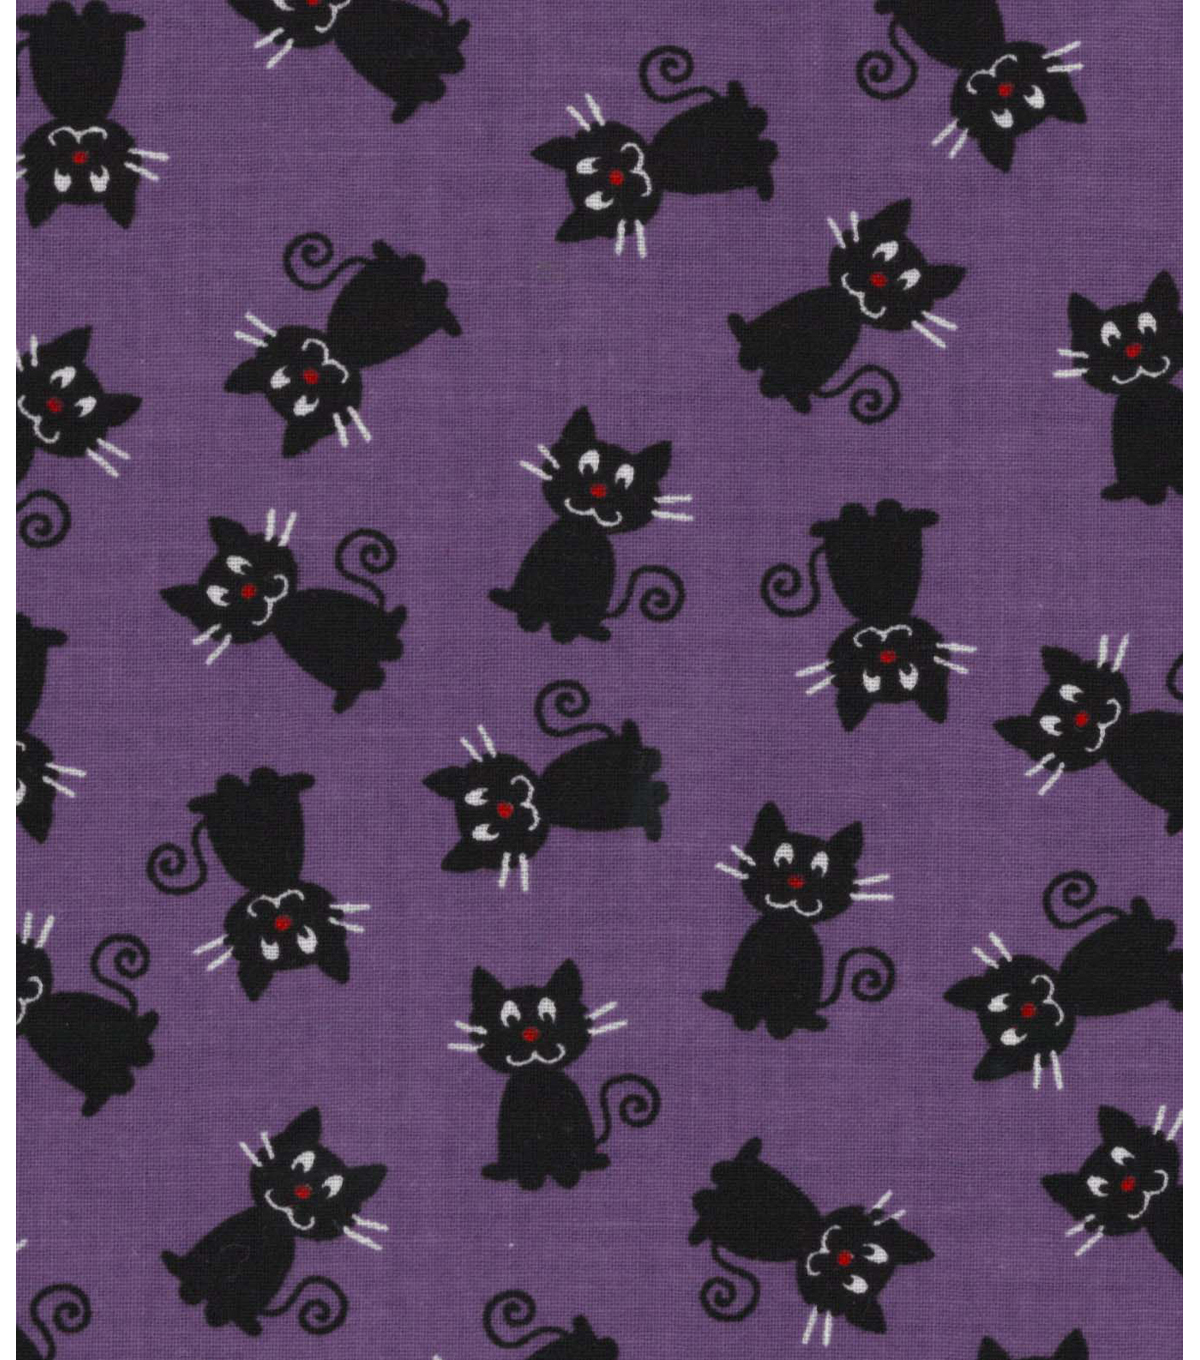 cats cotton Cat fabric pet material for clothing and crafts fun print